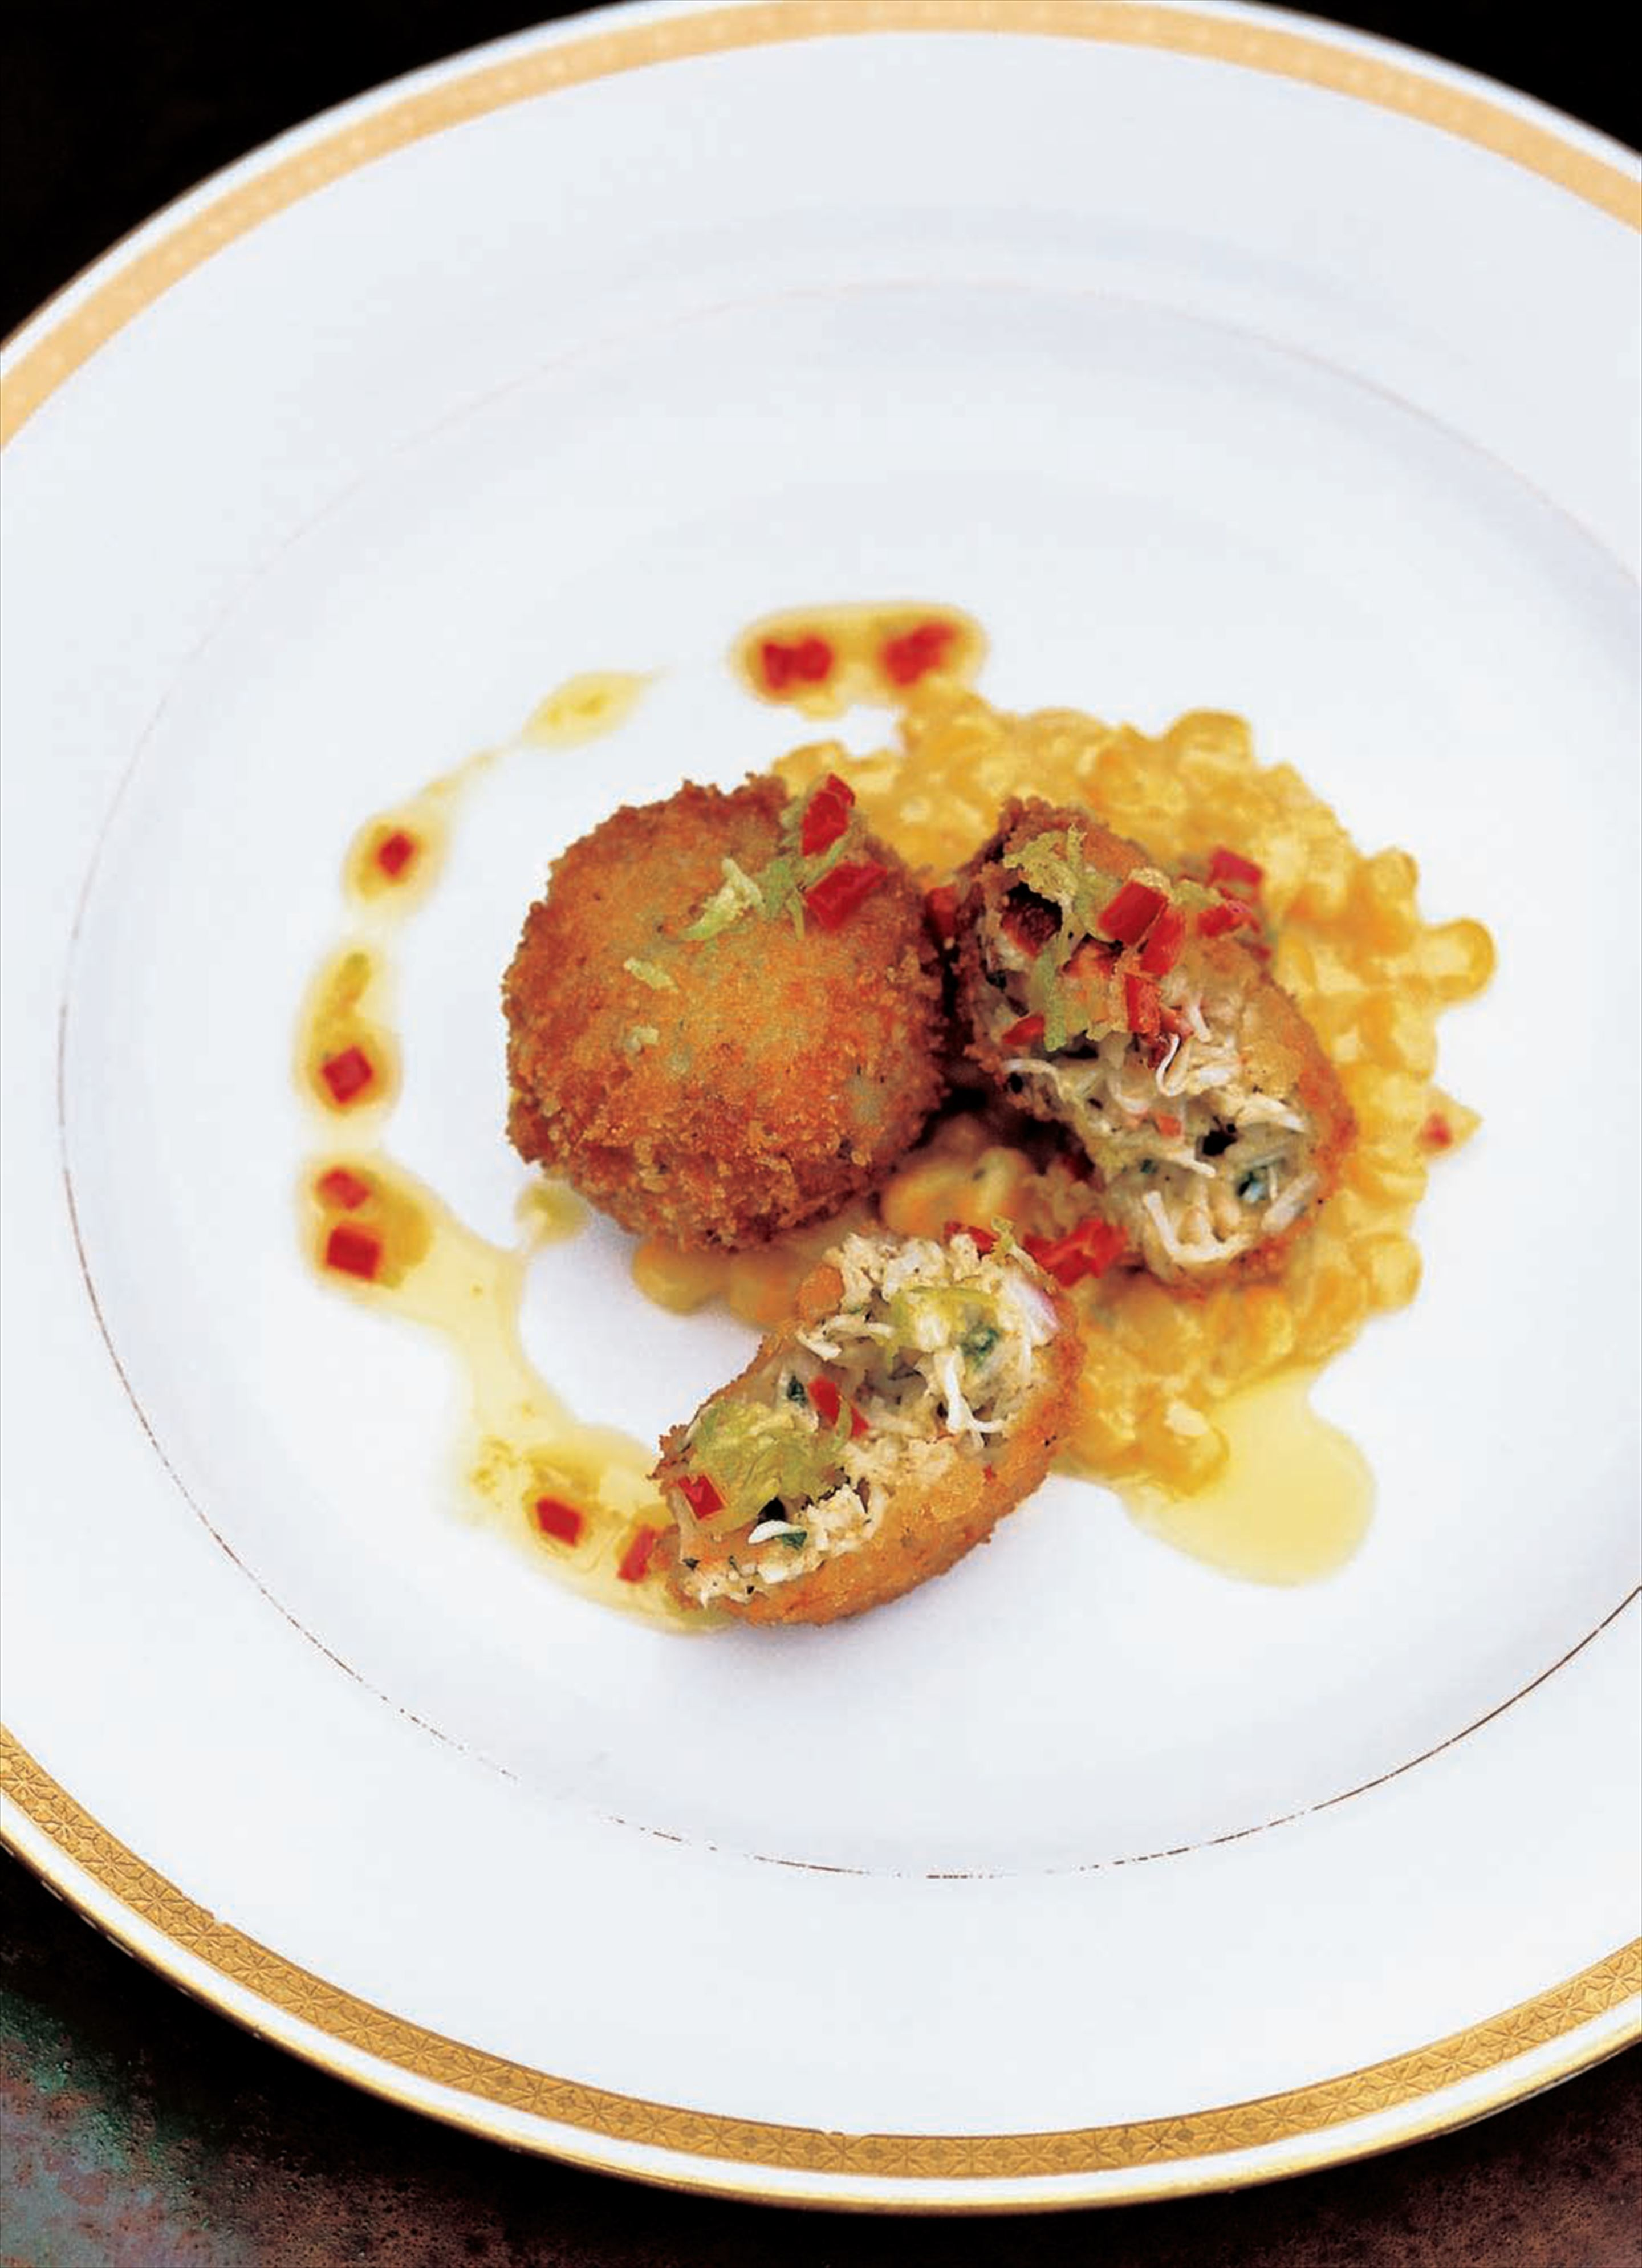 Crab cakes with corn purée and chilli oil